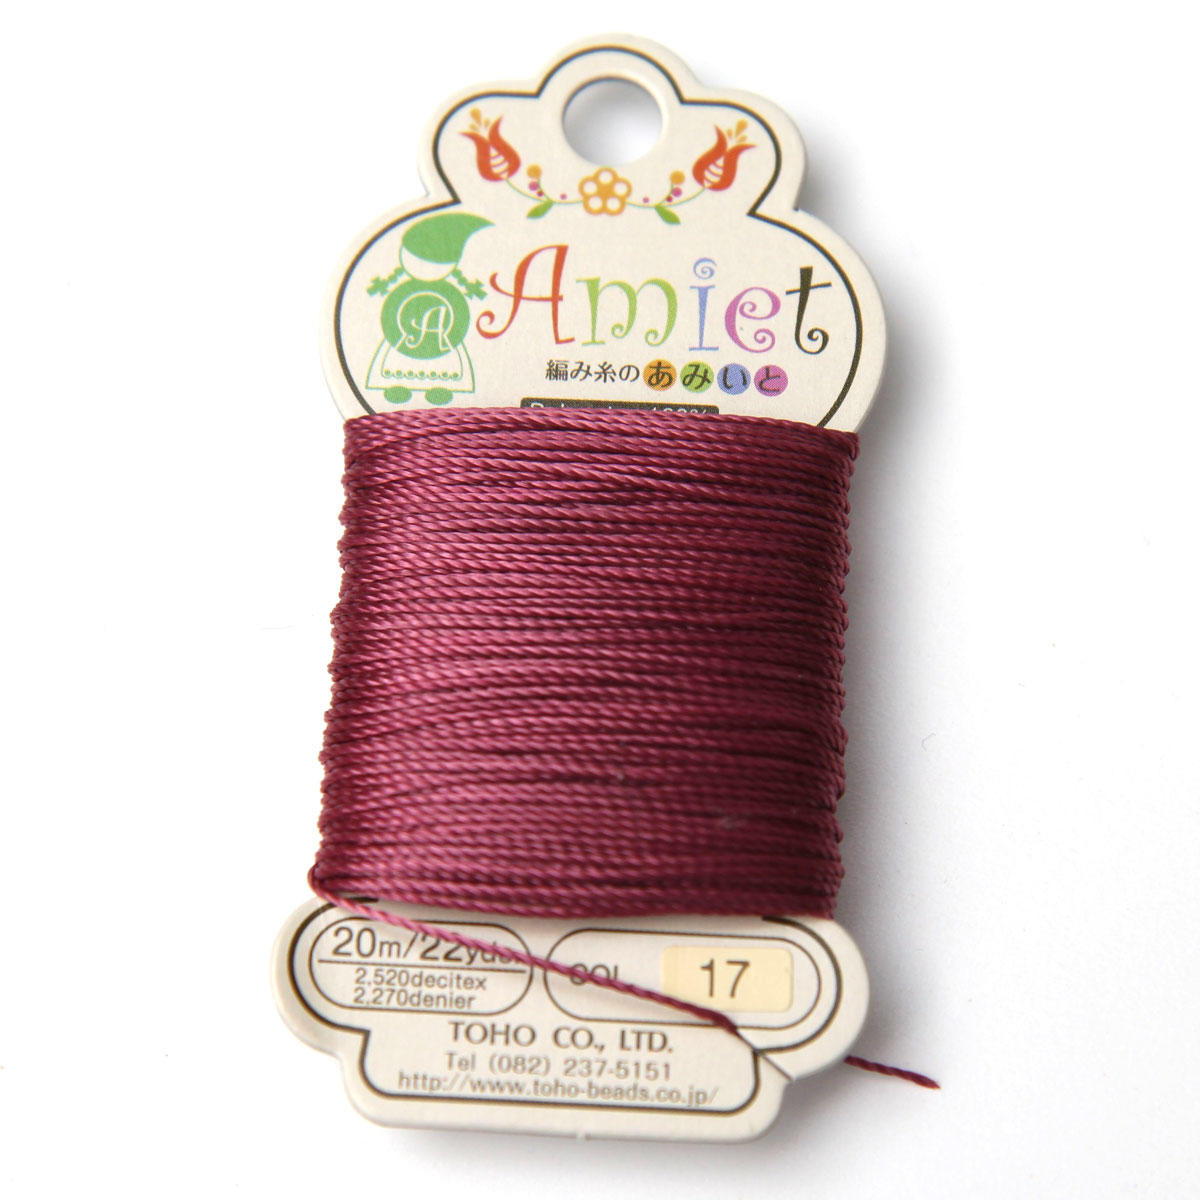 Berry Amiet Bead Cord Spool